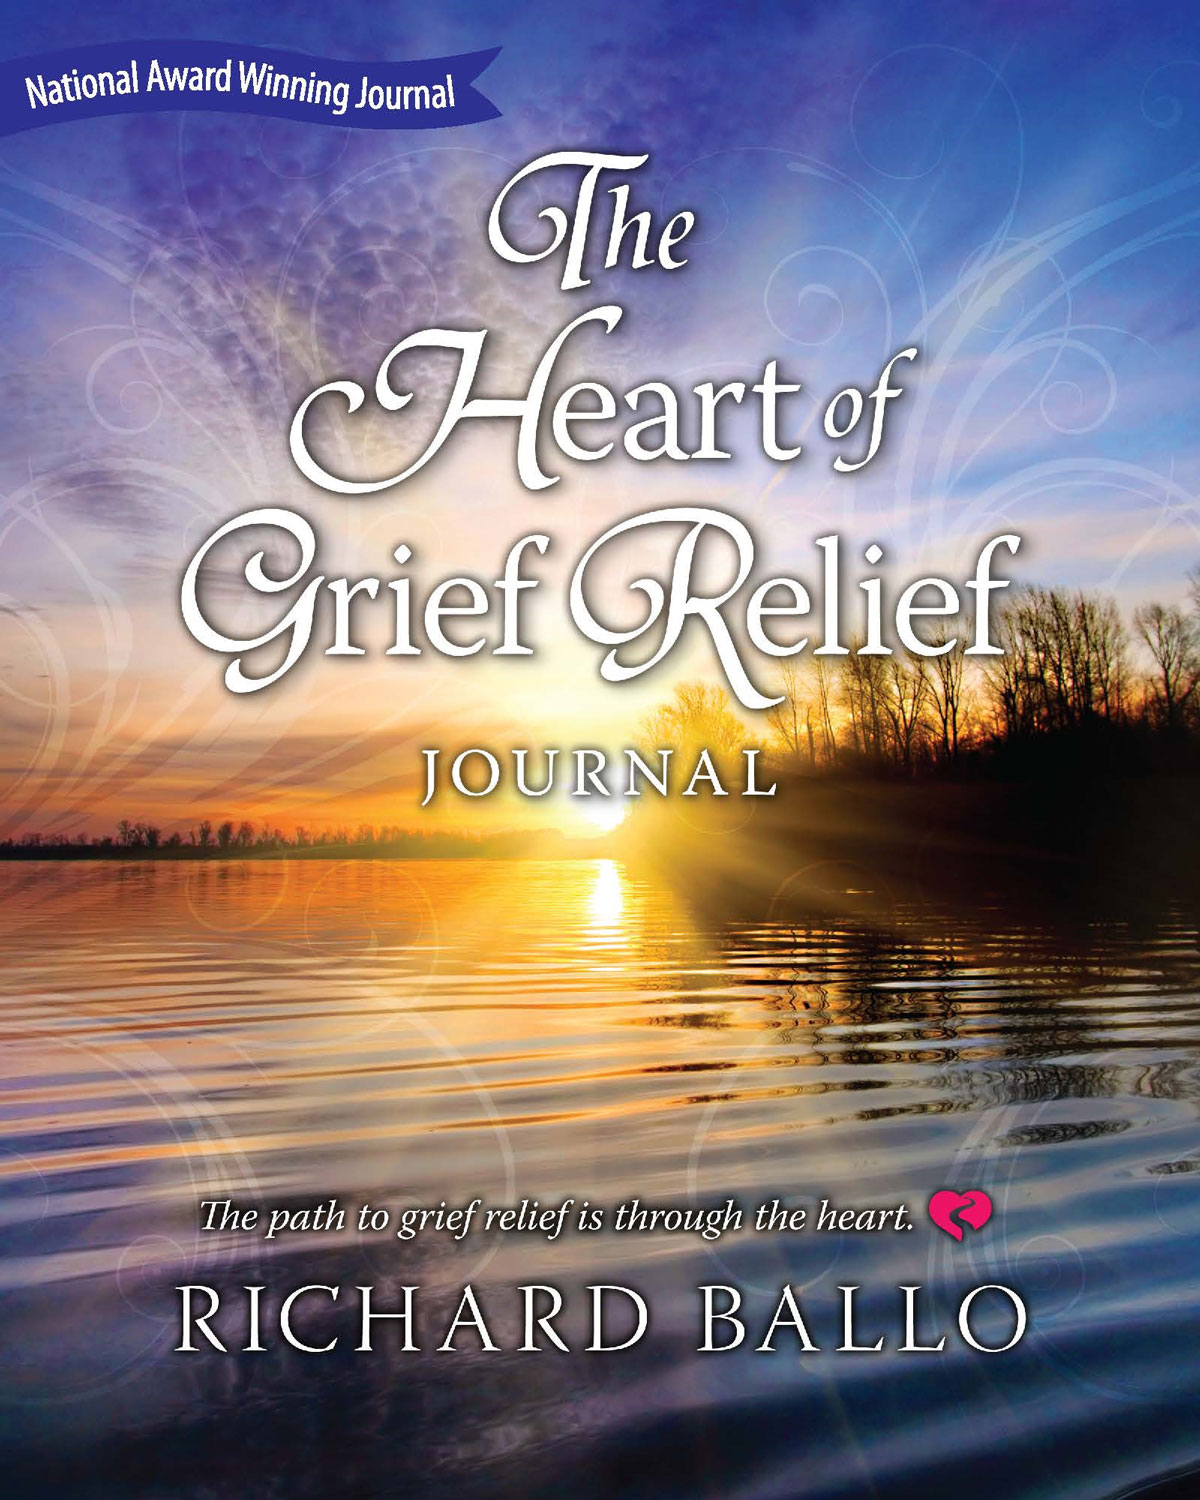 The Heart of Grief Relief Journal by Richard Ballo